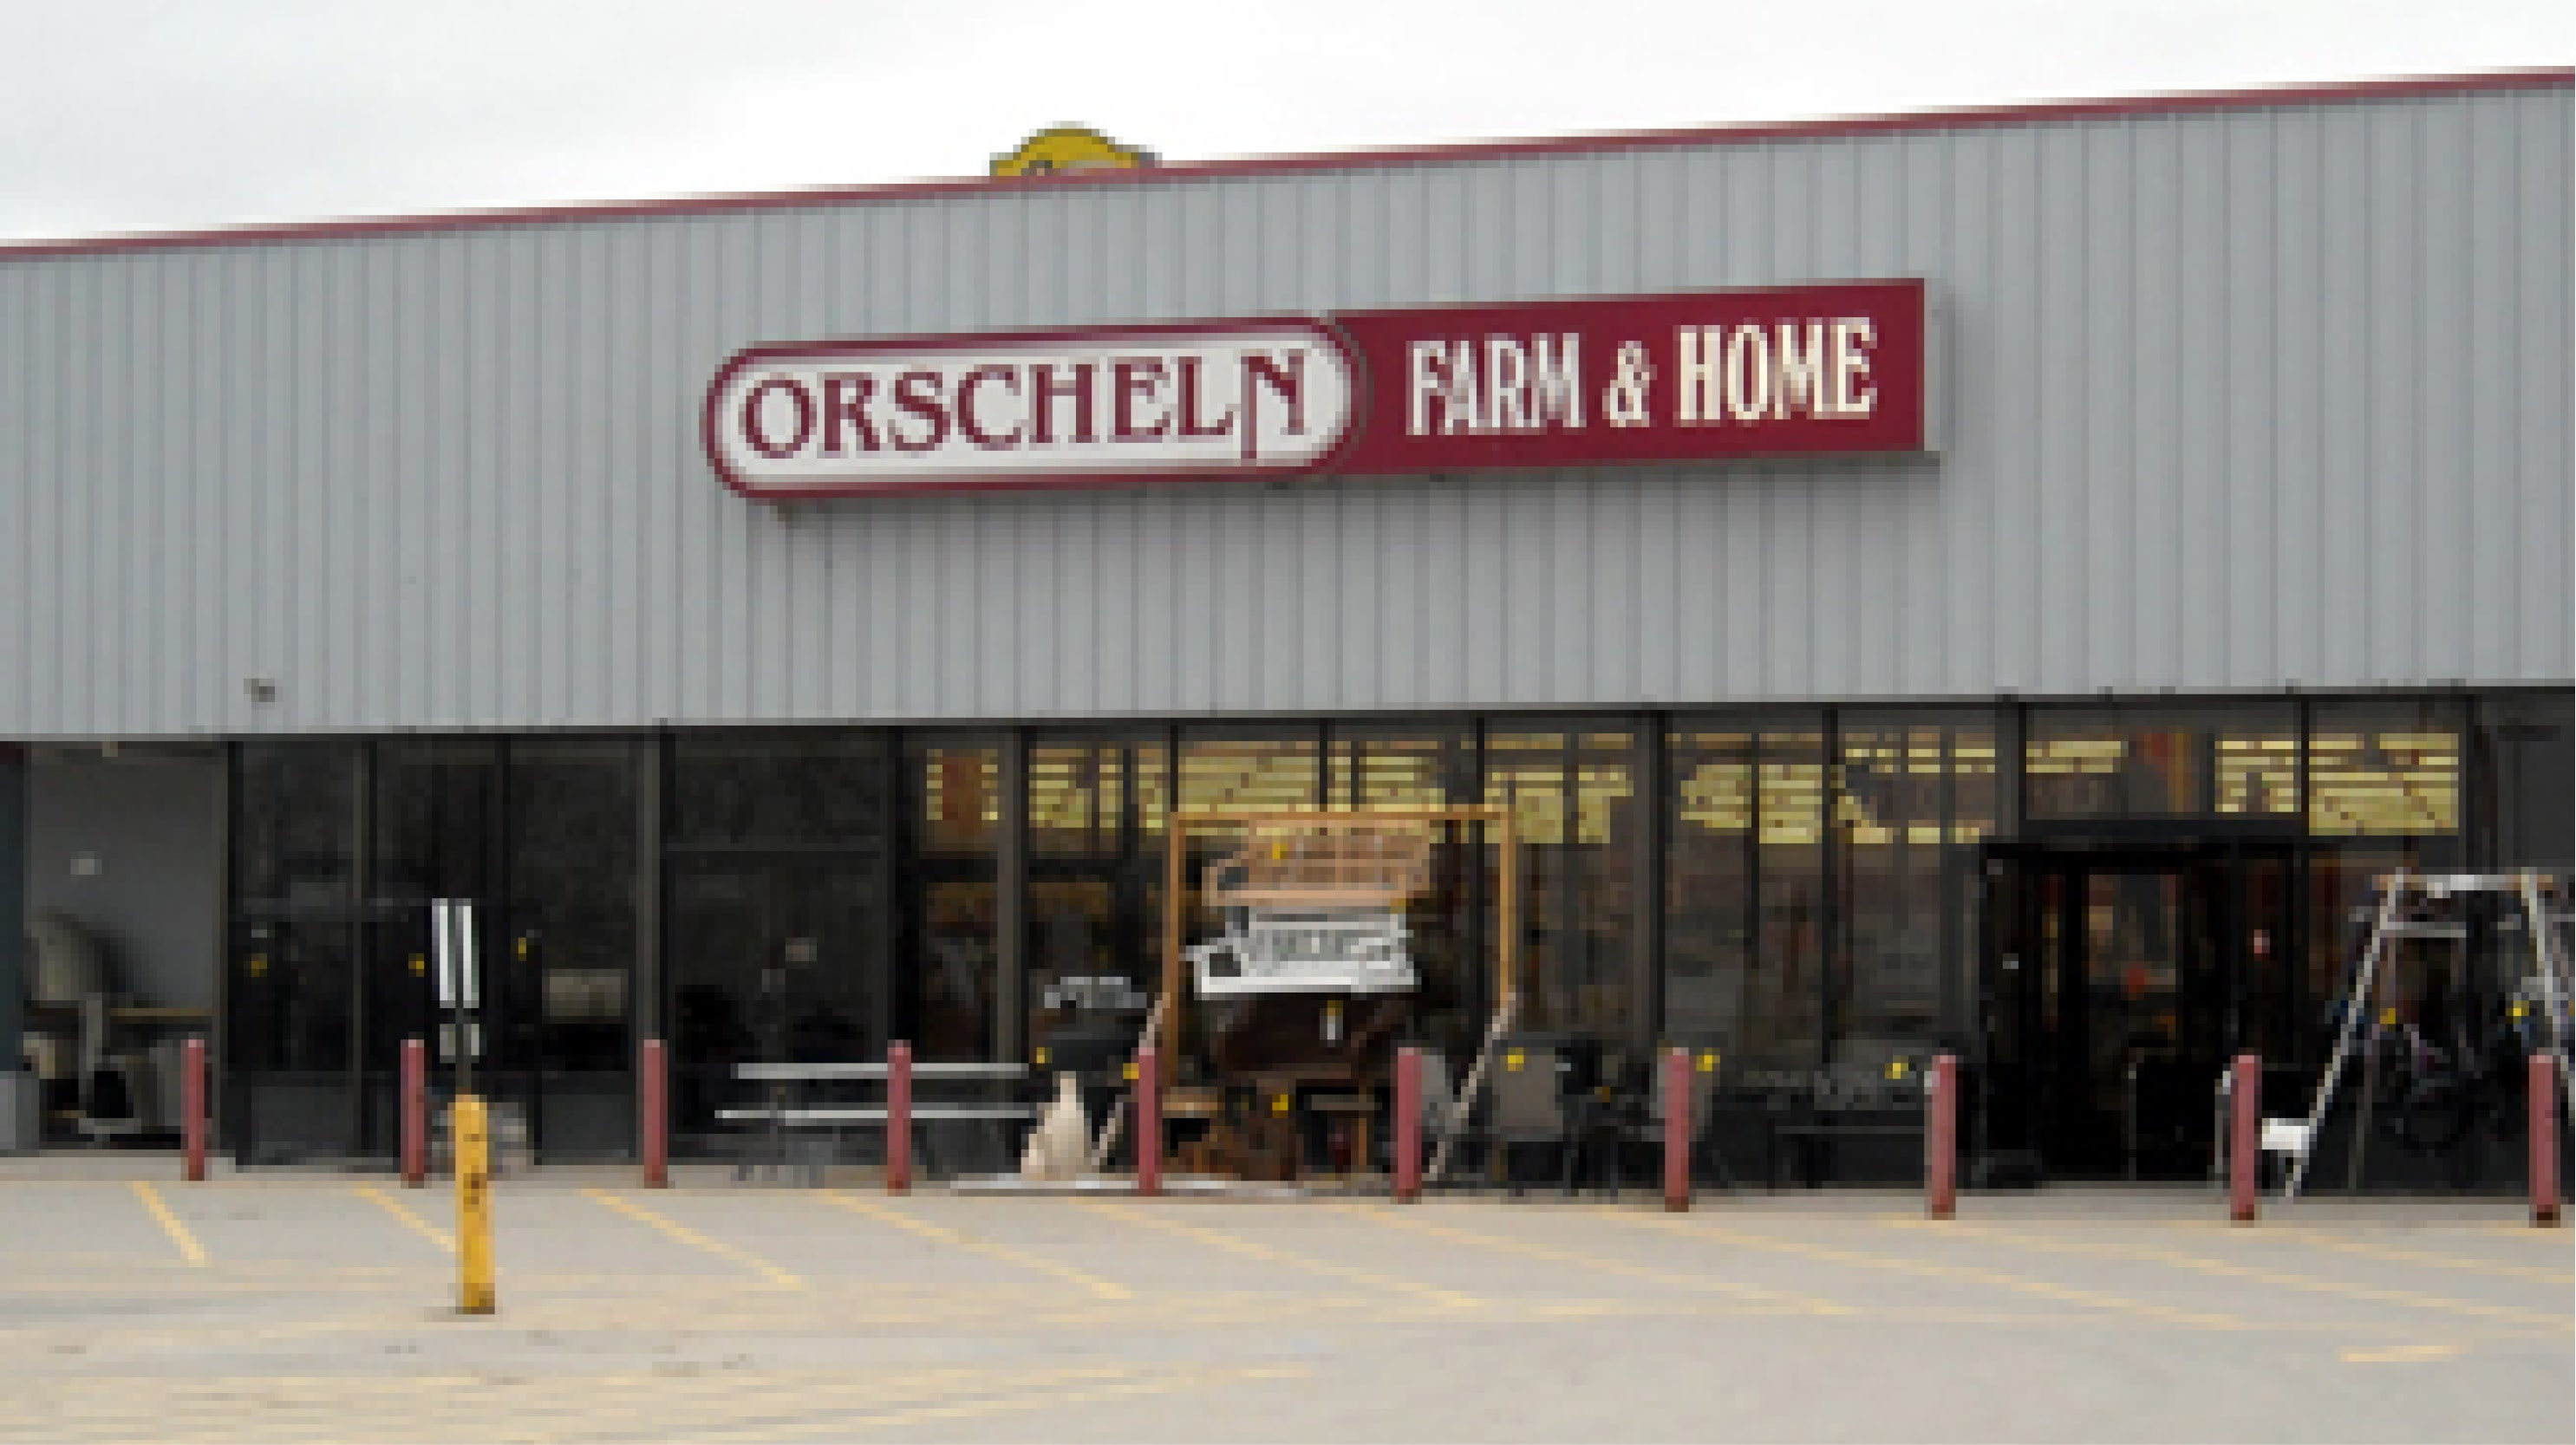 Front view of Orscheln Farm & Home Store in Bethany, Missouri 64424-2725